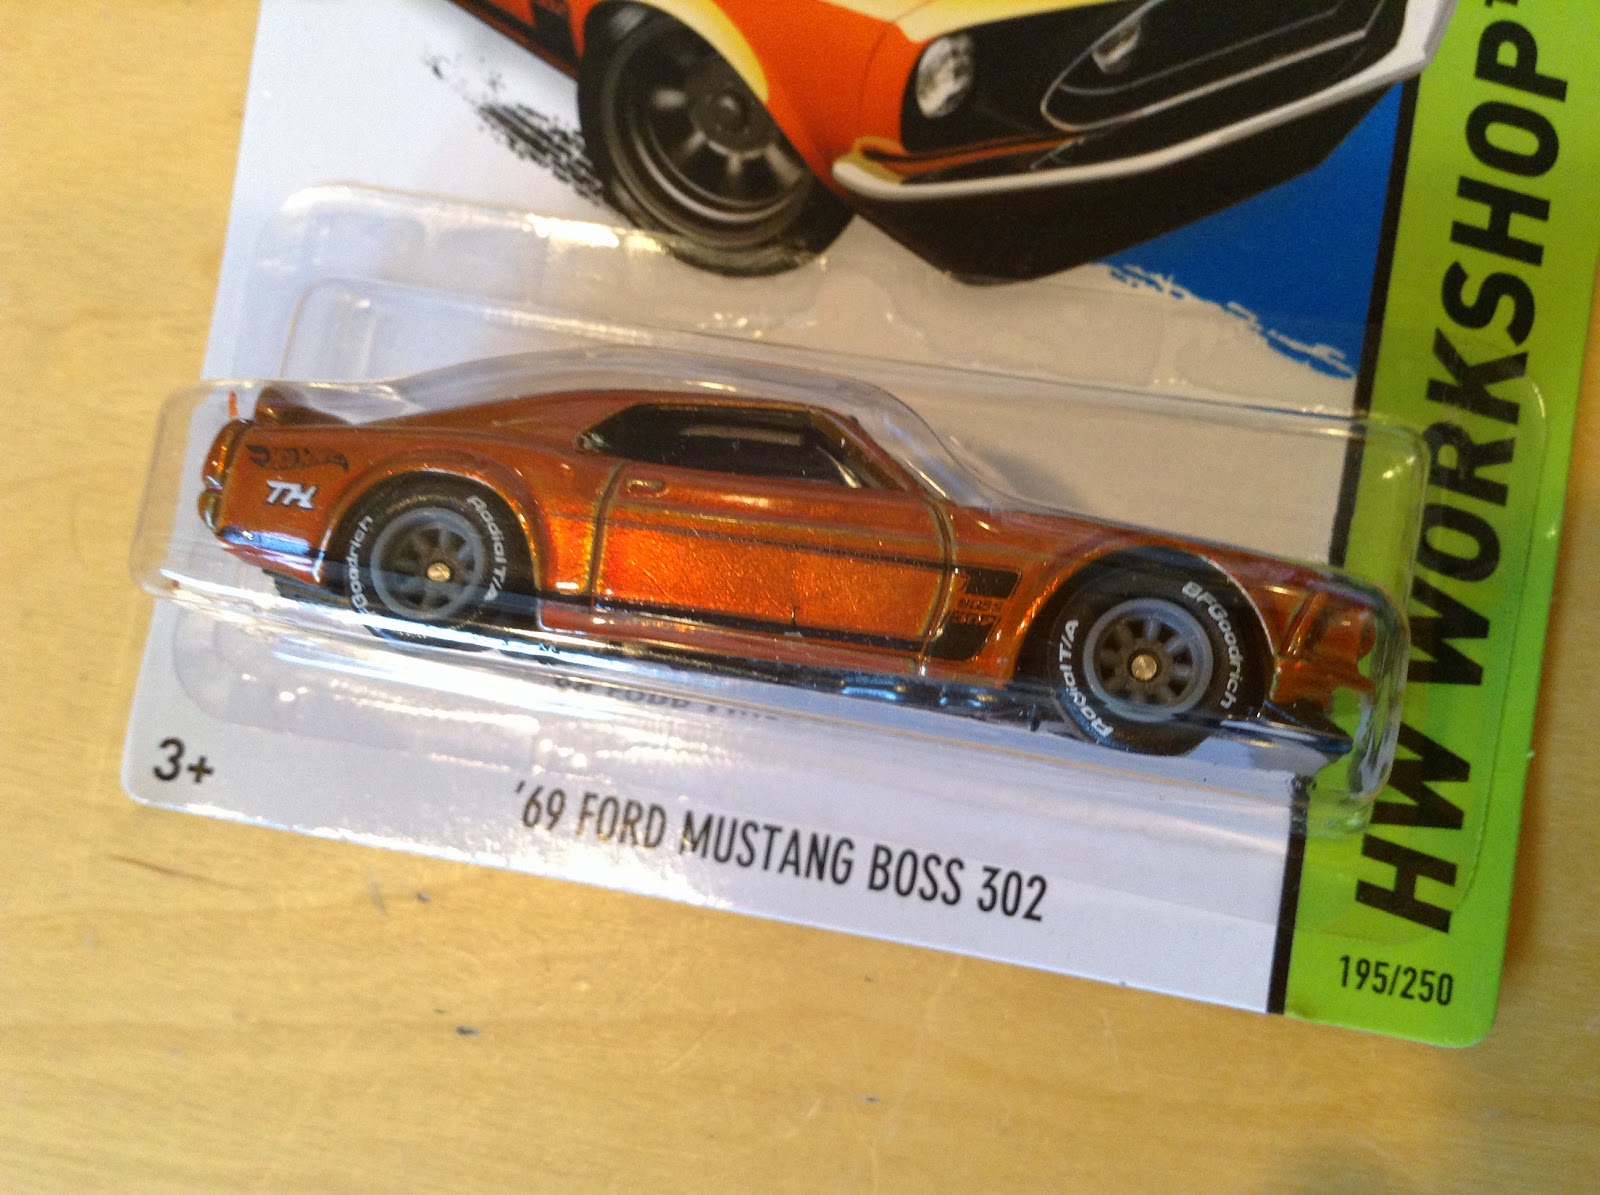 69 ford mustang boss 302 2015 e case super treasure hunt